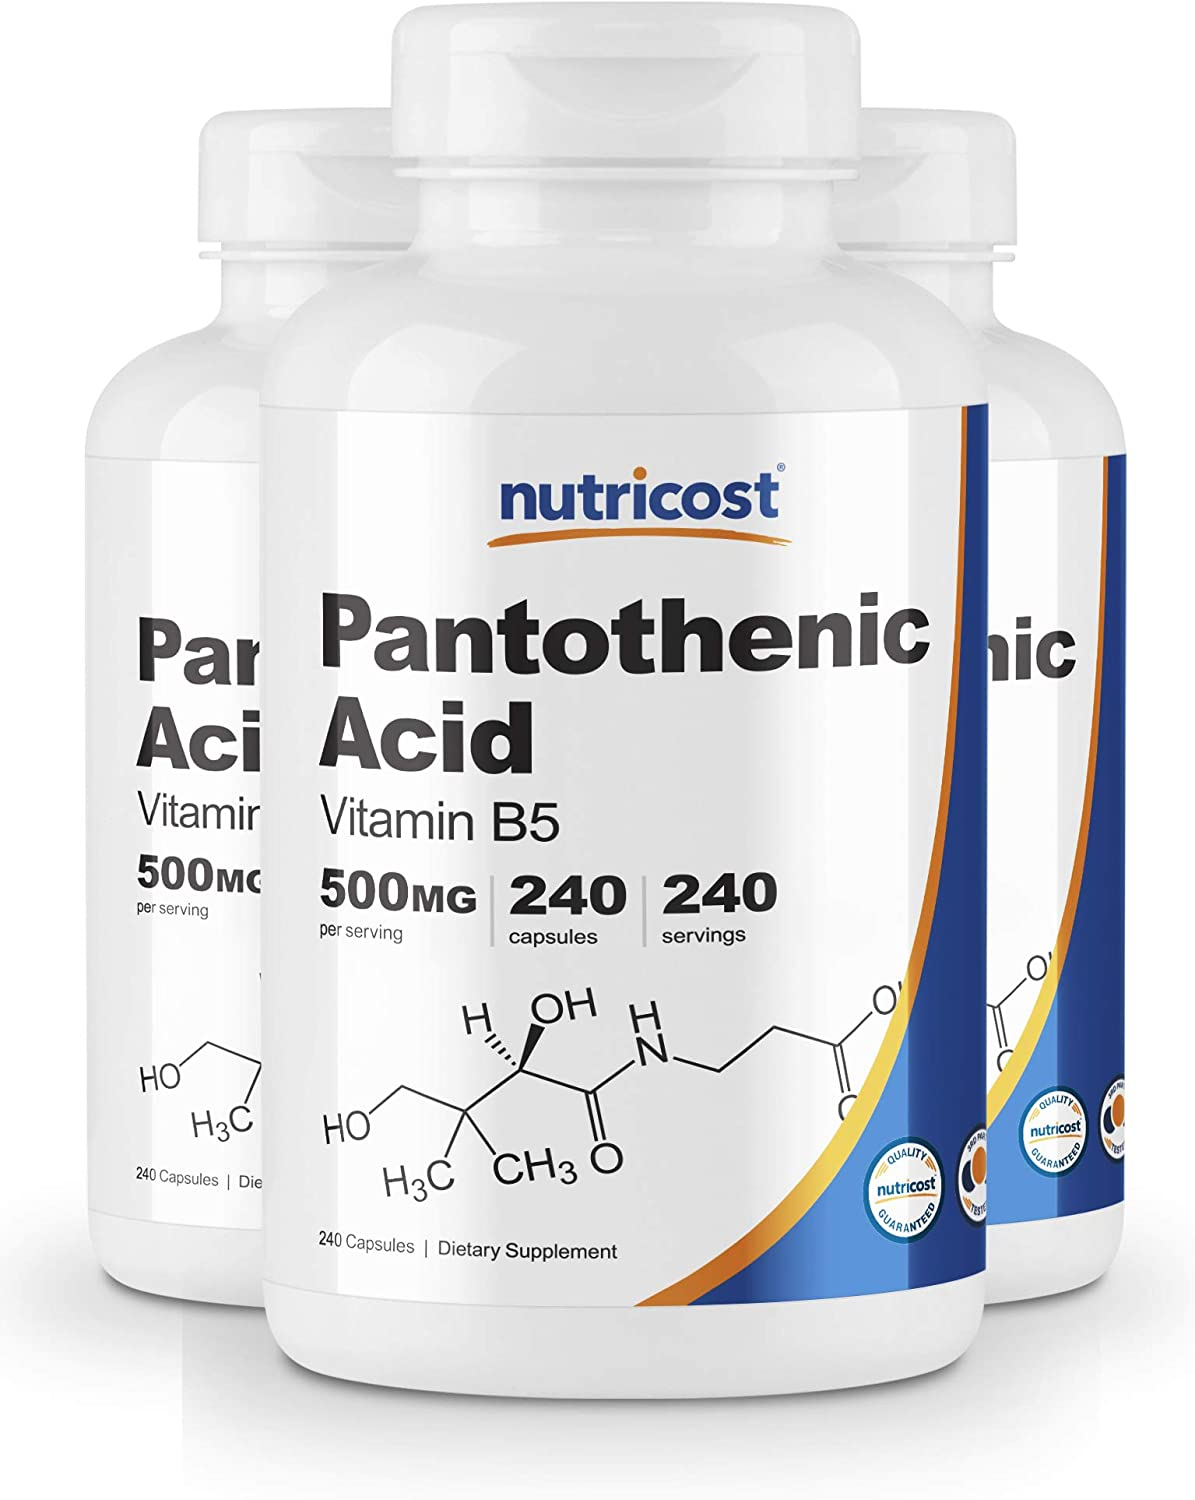 Nutricost Pantothenic Acid (Vitamin B5) 500mg, 240 Capsules (3 Bottles)